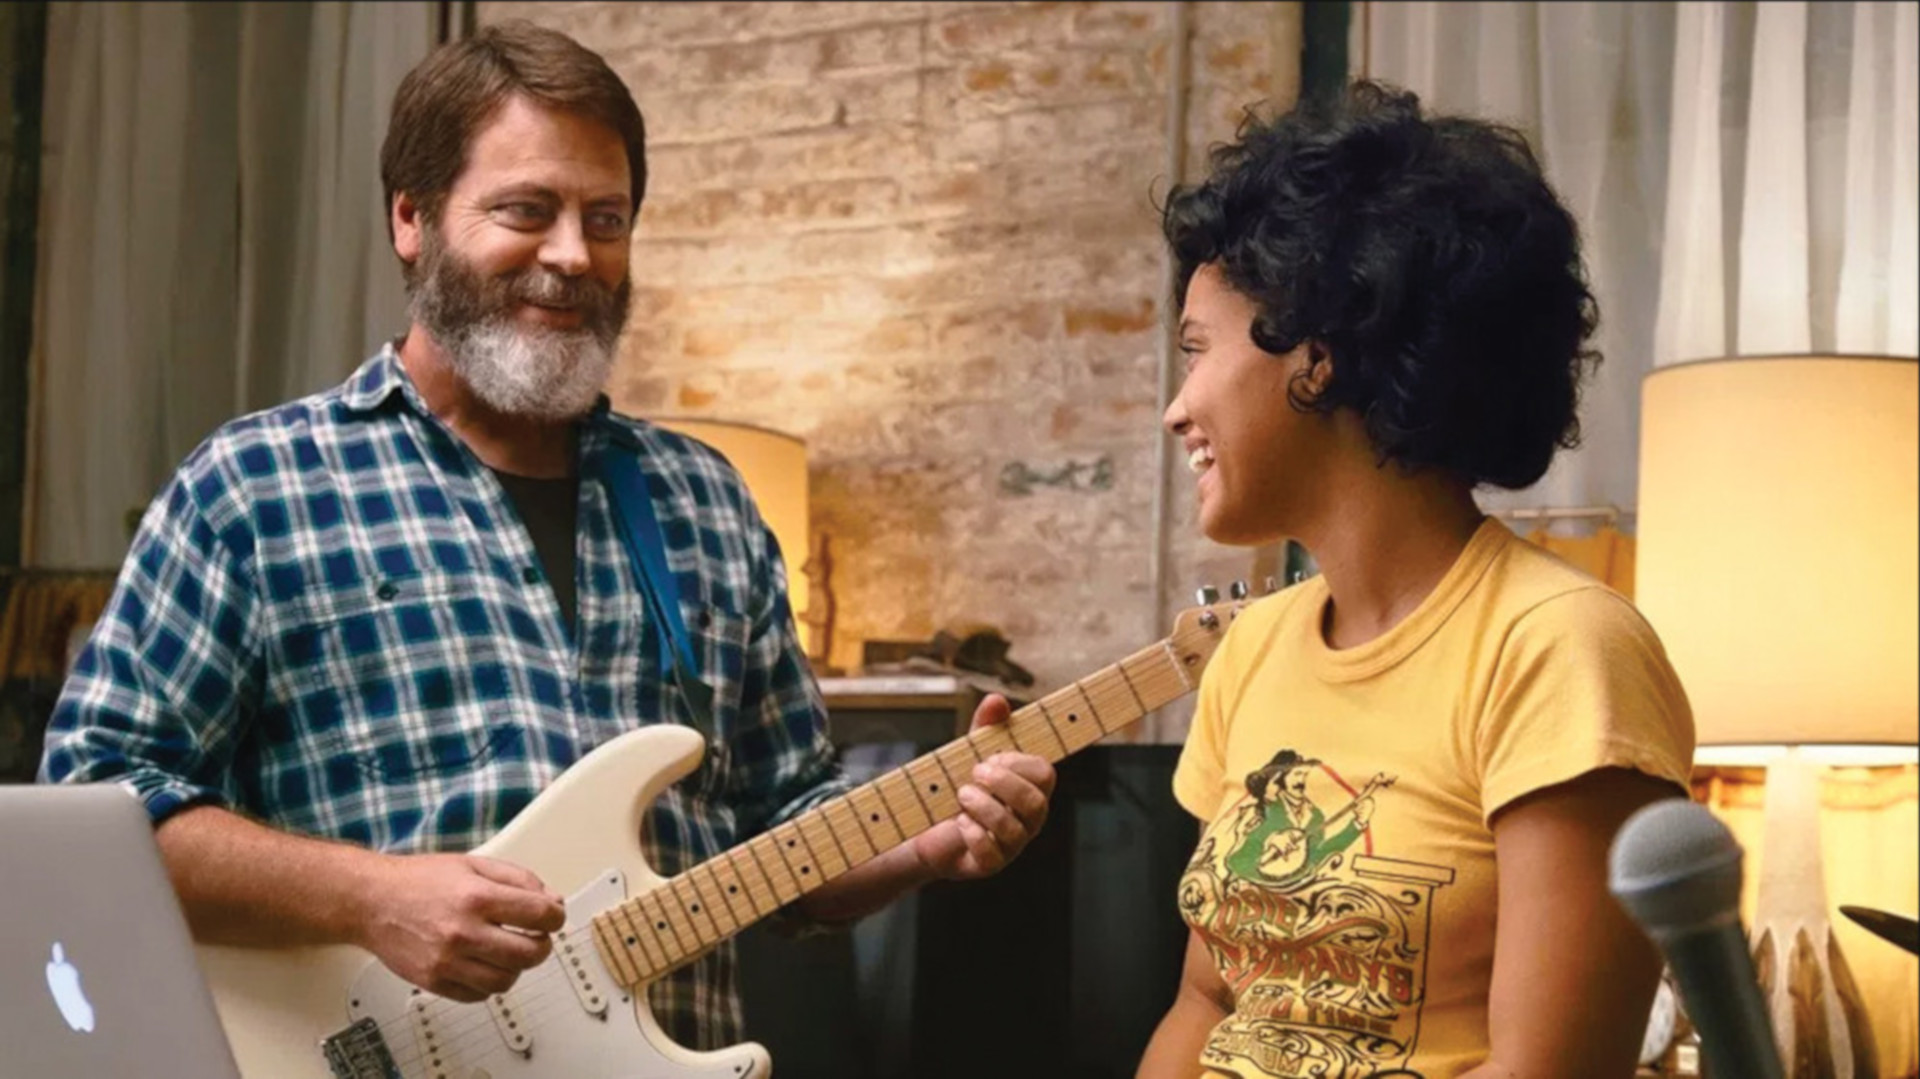 Hearts Beat Loud: Feel-good father-daughter film includes sweet gay romance